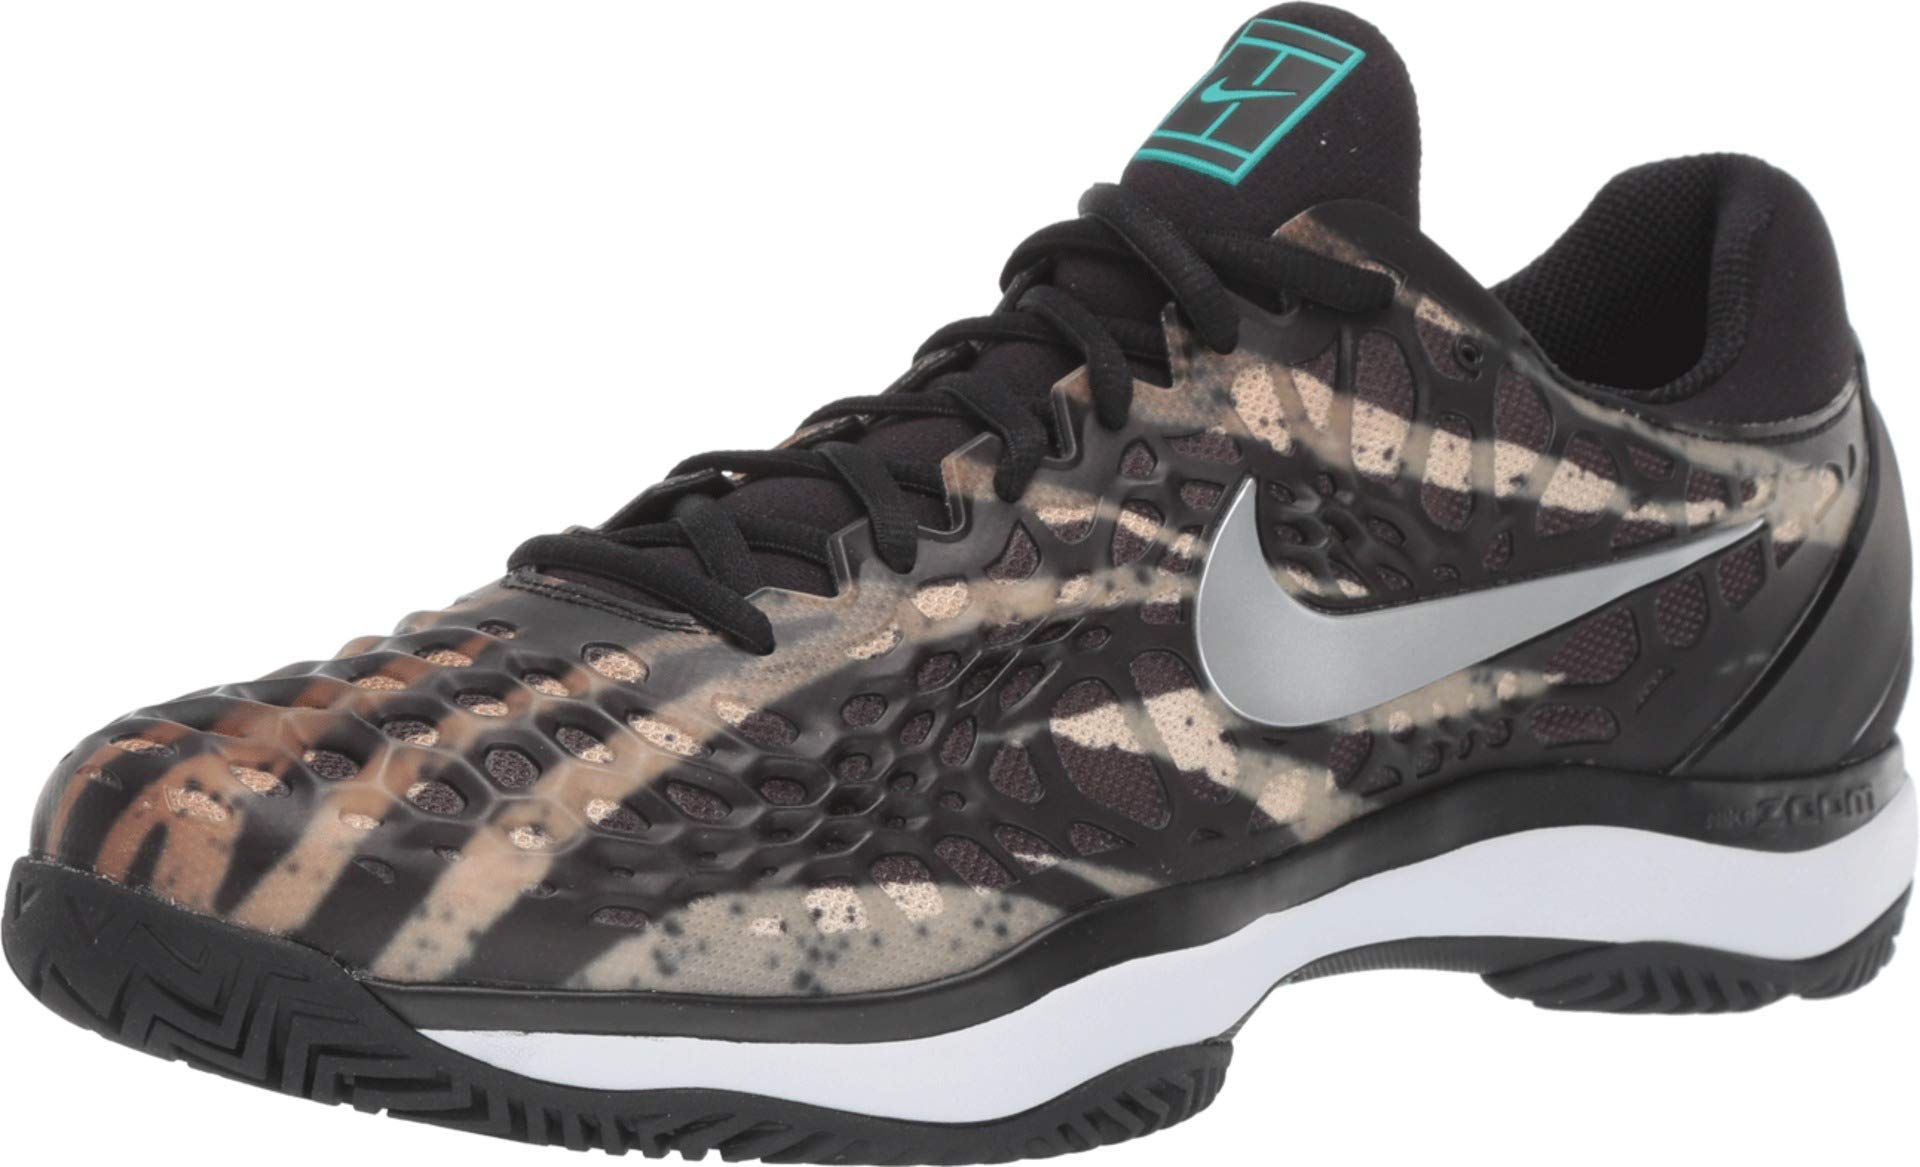 Nike Air Zoom Cage 3 Hc Mens 918193-702 Size 13 by Nike